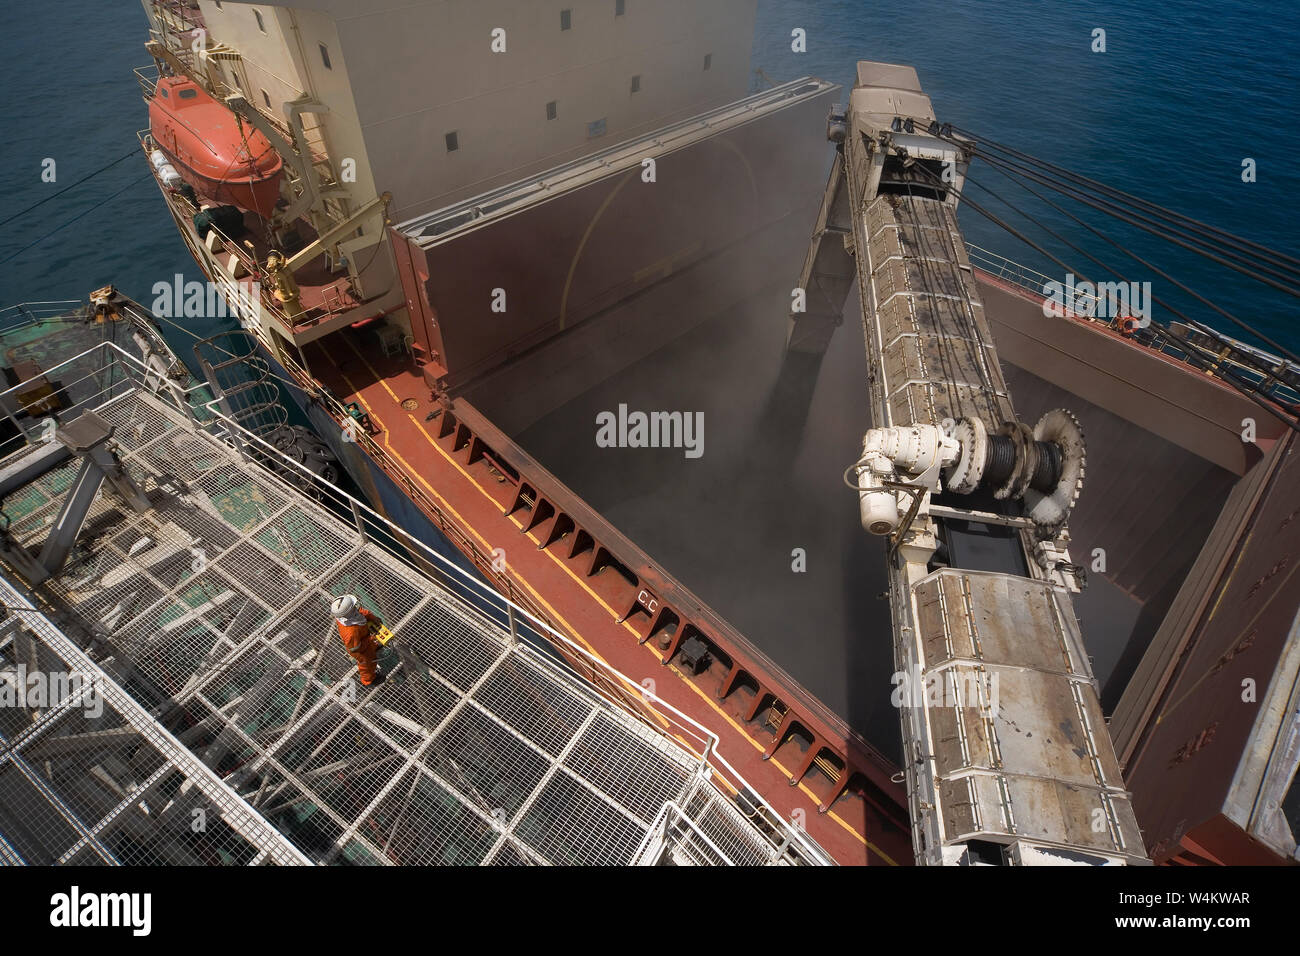 Mining, managing & transporting of titanium mineral sands. Loading mineral sands cargo via transhipment barge boom into hold of bulk carrier at sea. Stock Photo